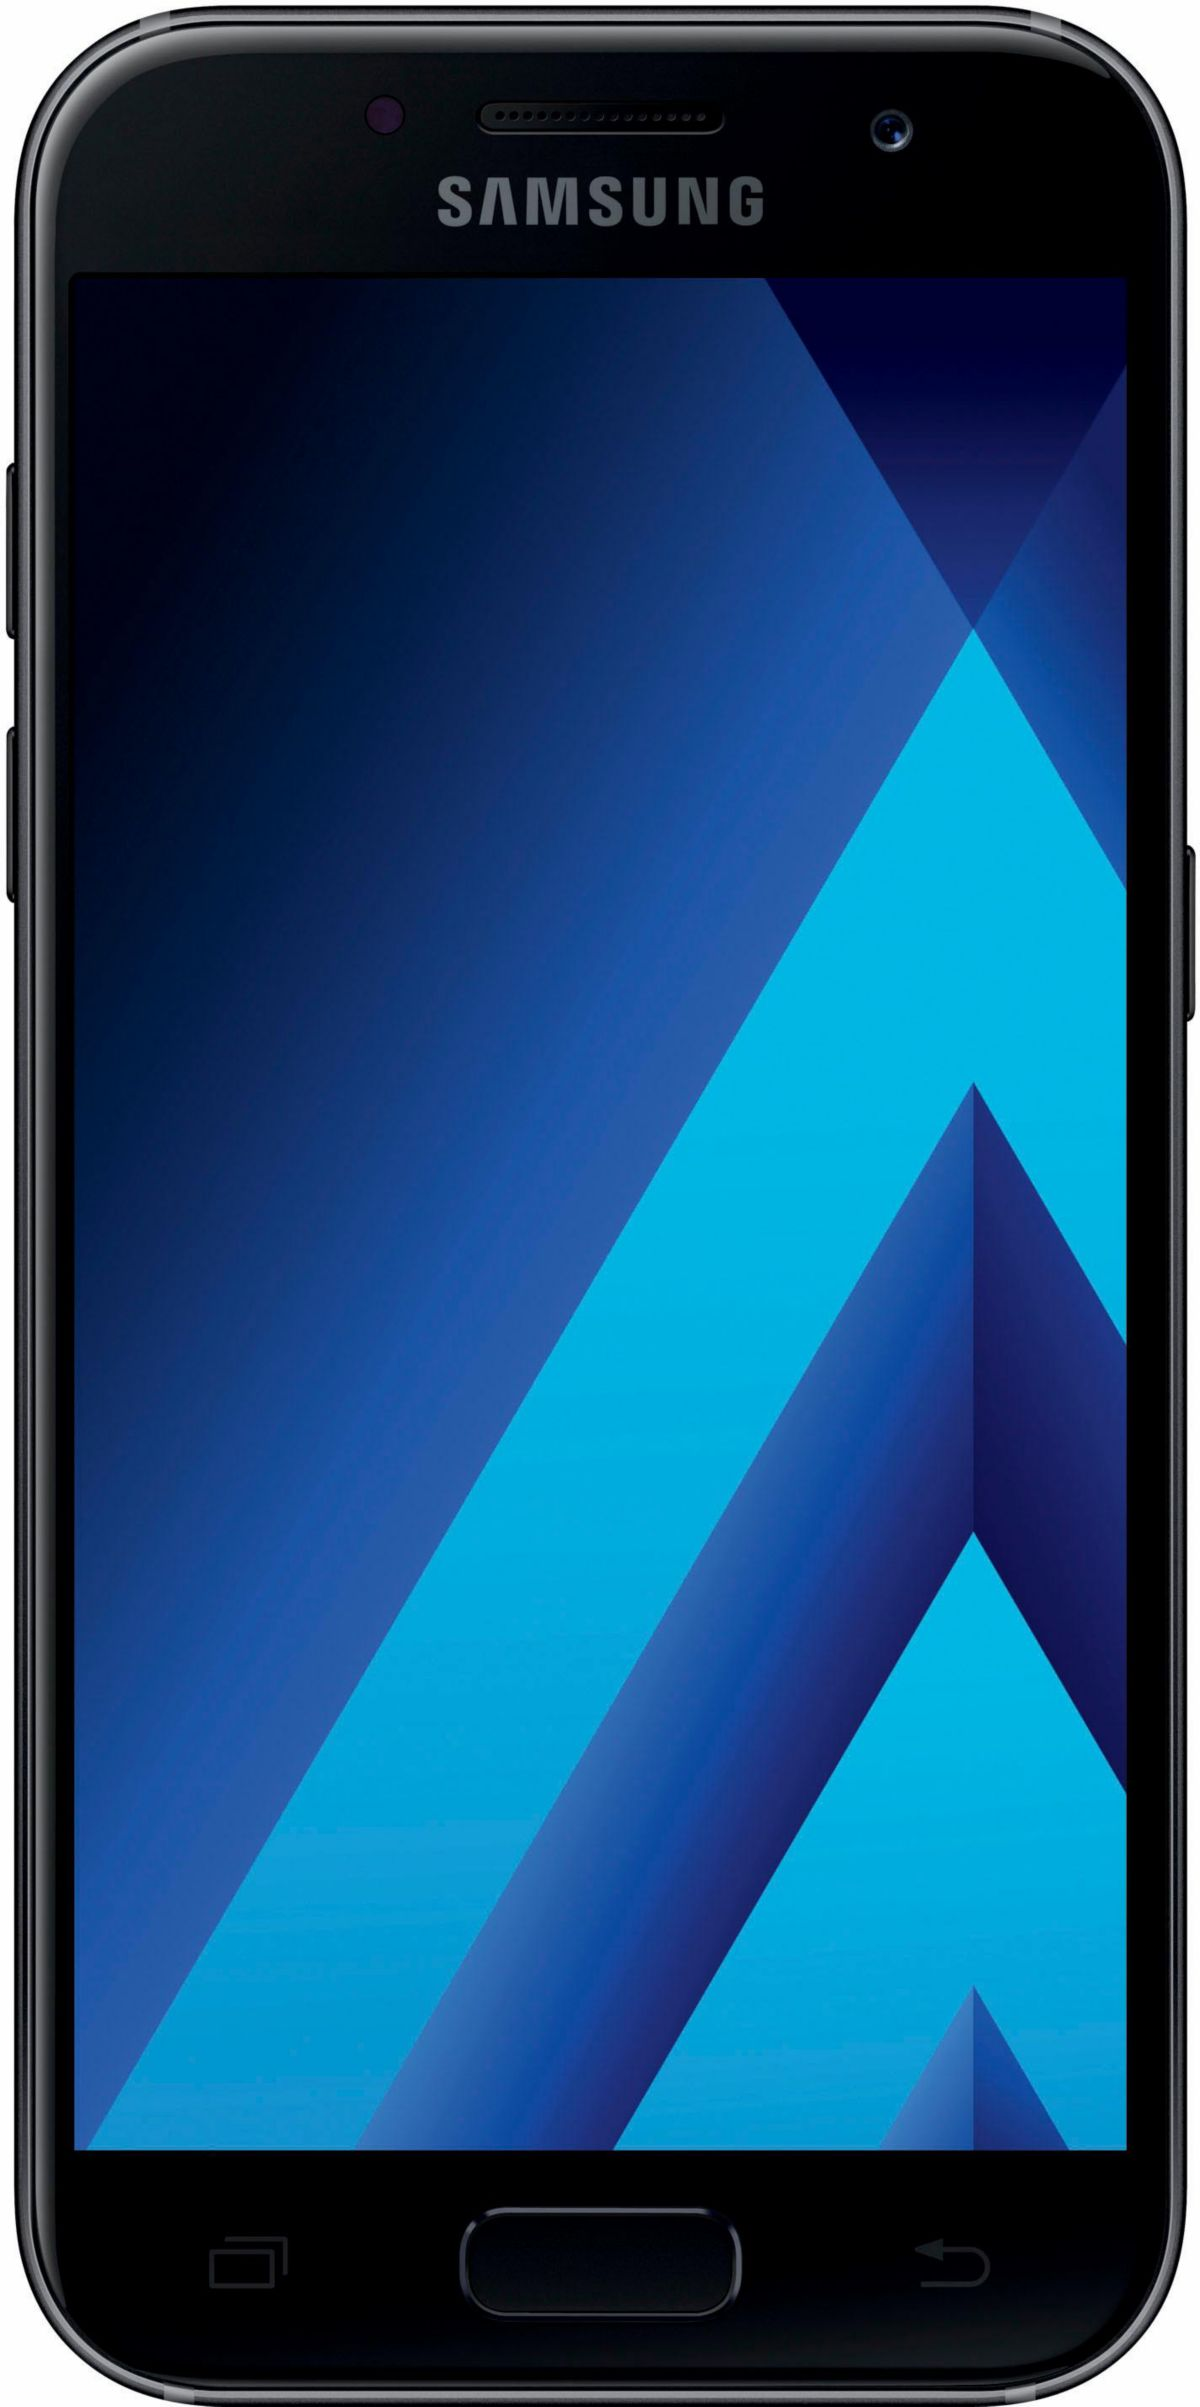 Samsung Galaxy A3 2017 Smartphone 12 cm 4 7 Zoll Display LTE 4G Android 6 0 Marshmallow